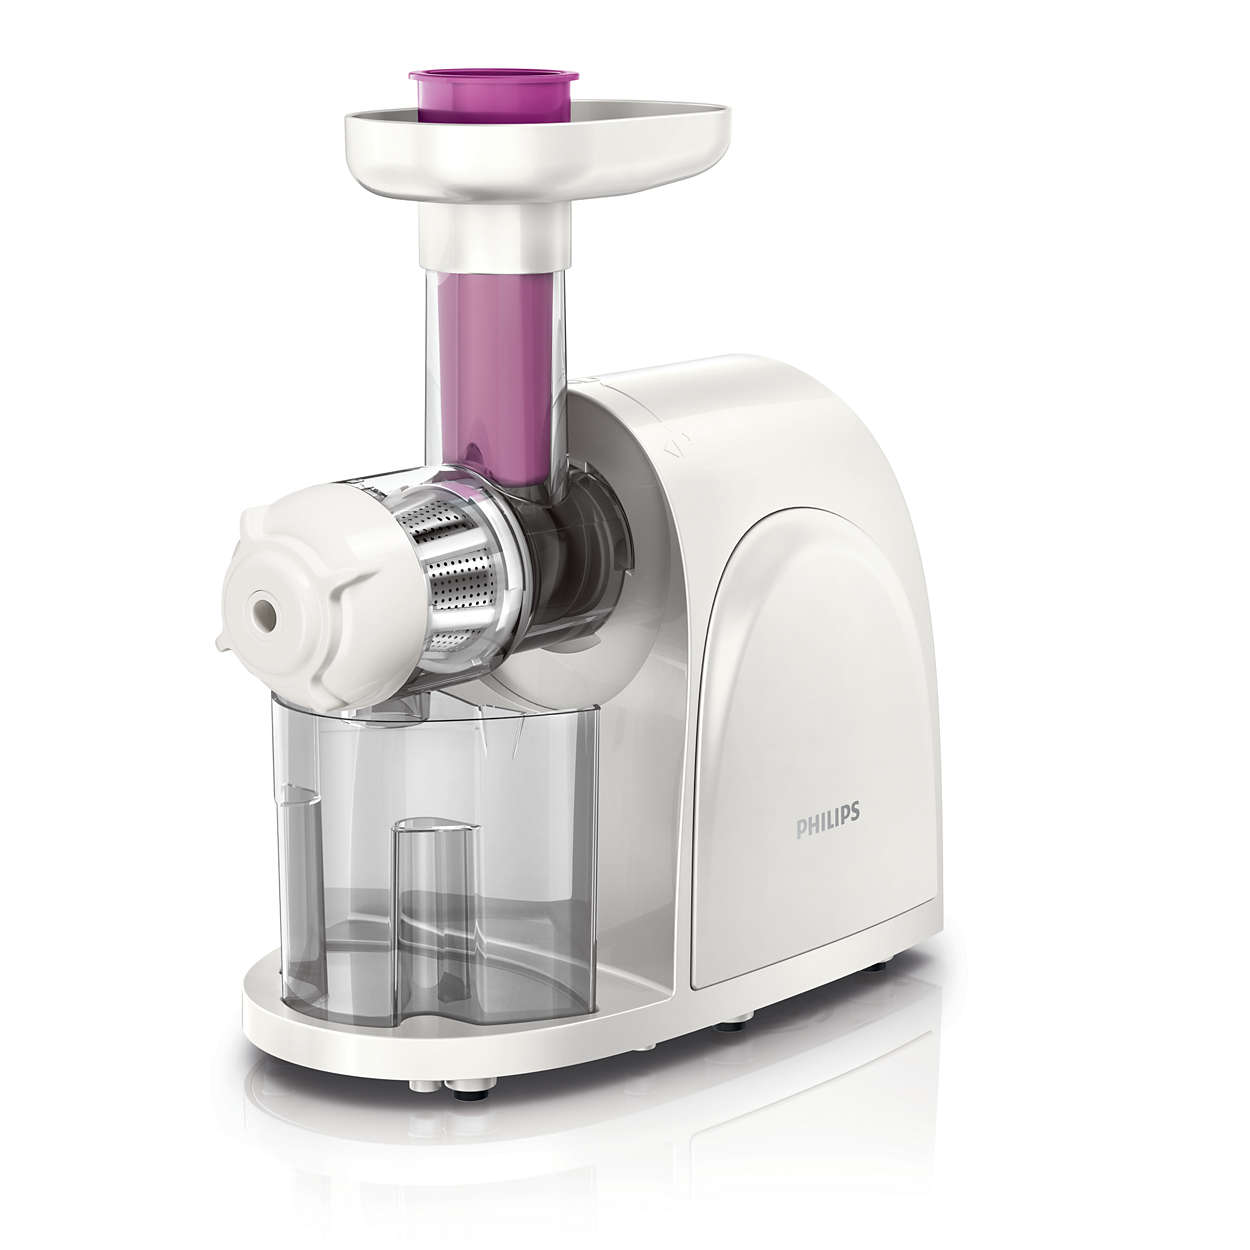 Jumbo Slow Juicer Signora : viva Collection Slow juicer HR1830/03 Philips